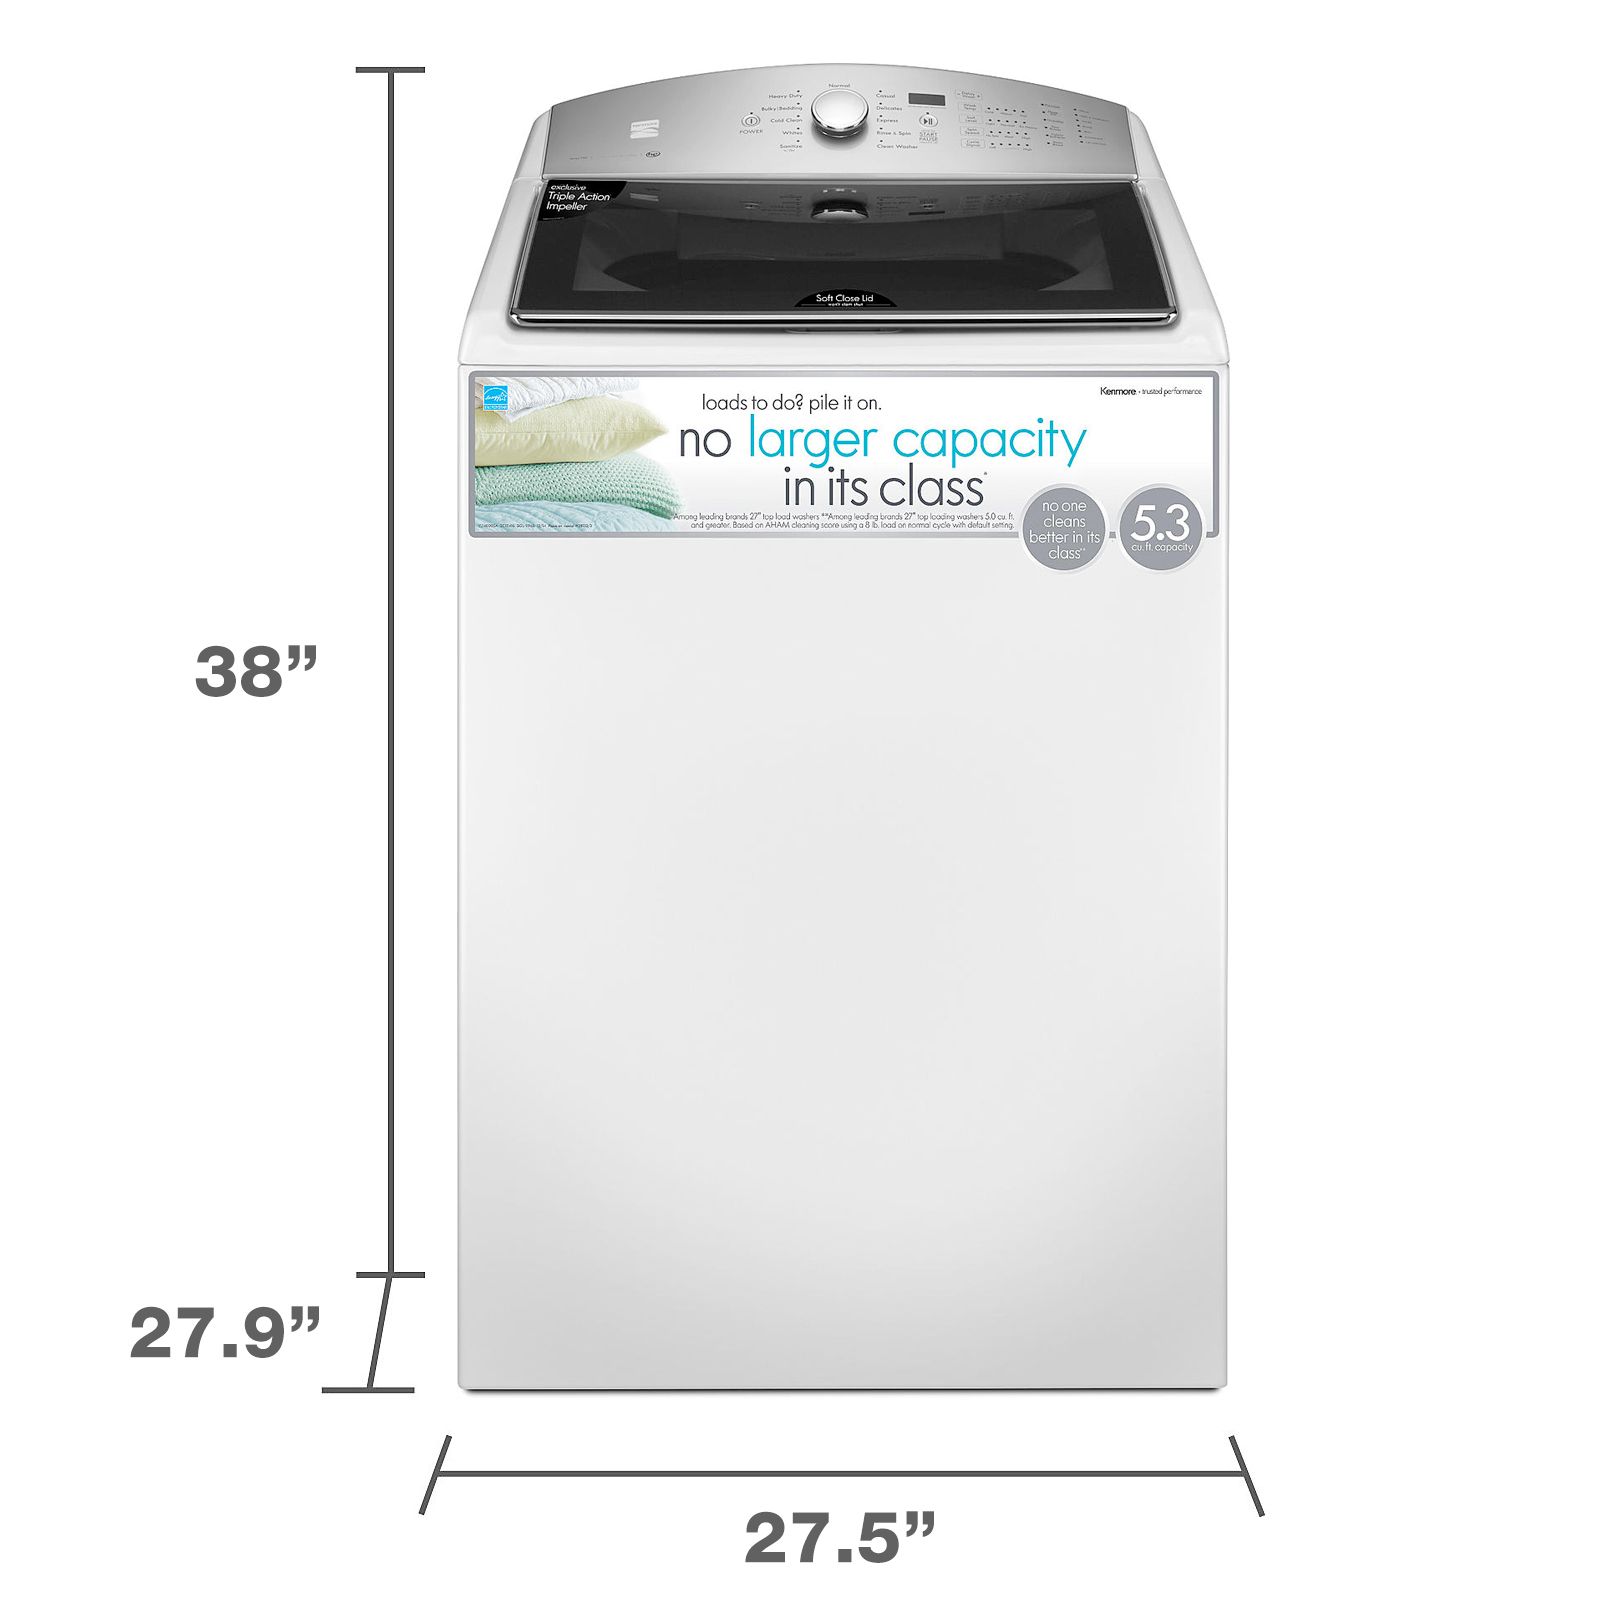 Kenmore 28132 5.3 cu. ft. Top-Load Washer w/ Triple Action Impeller - White